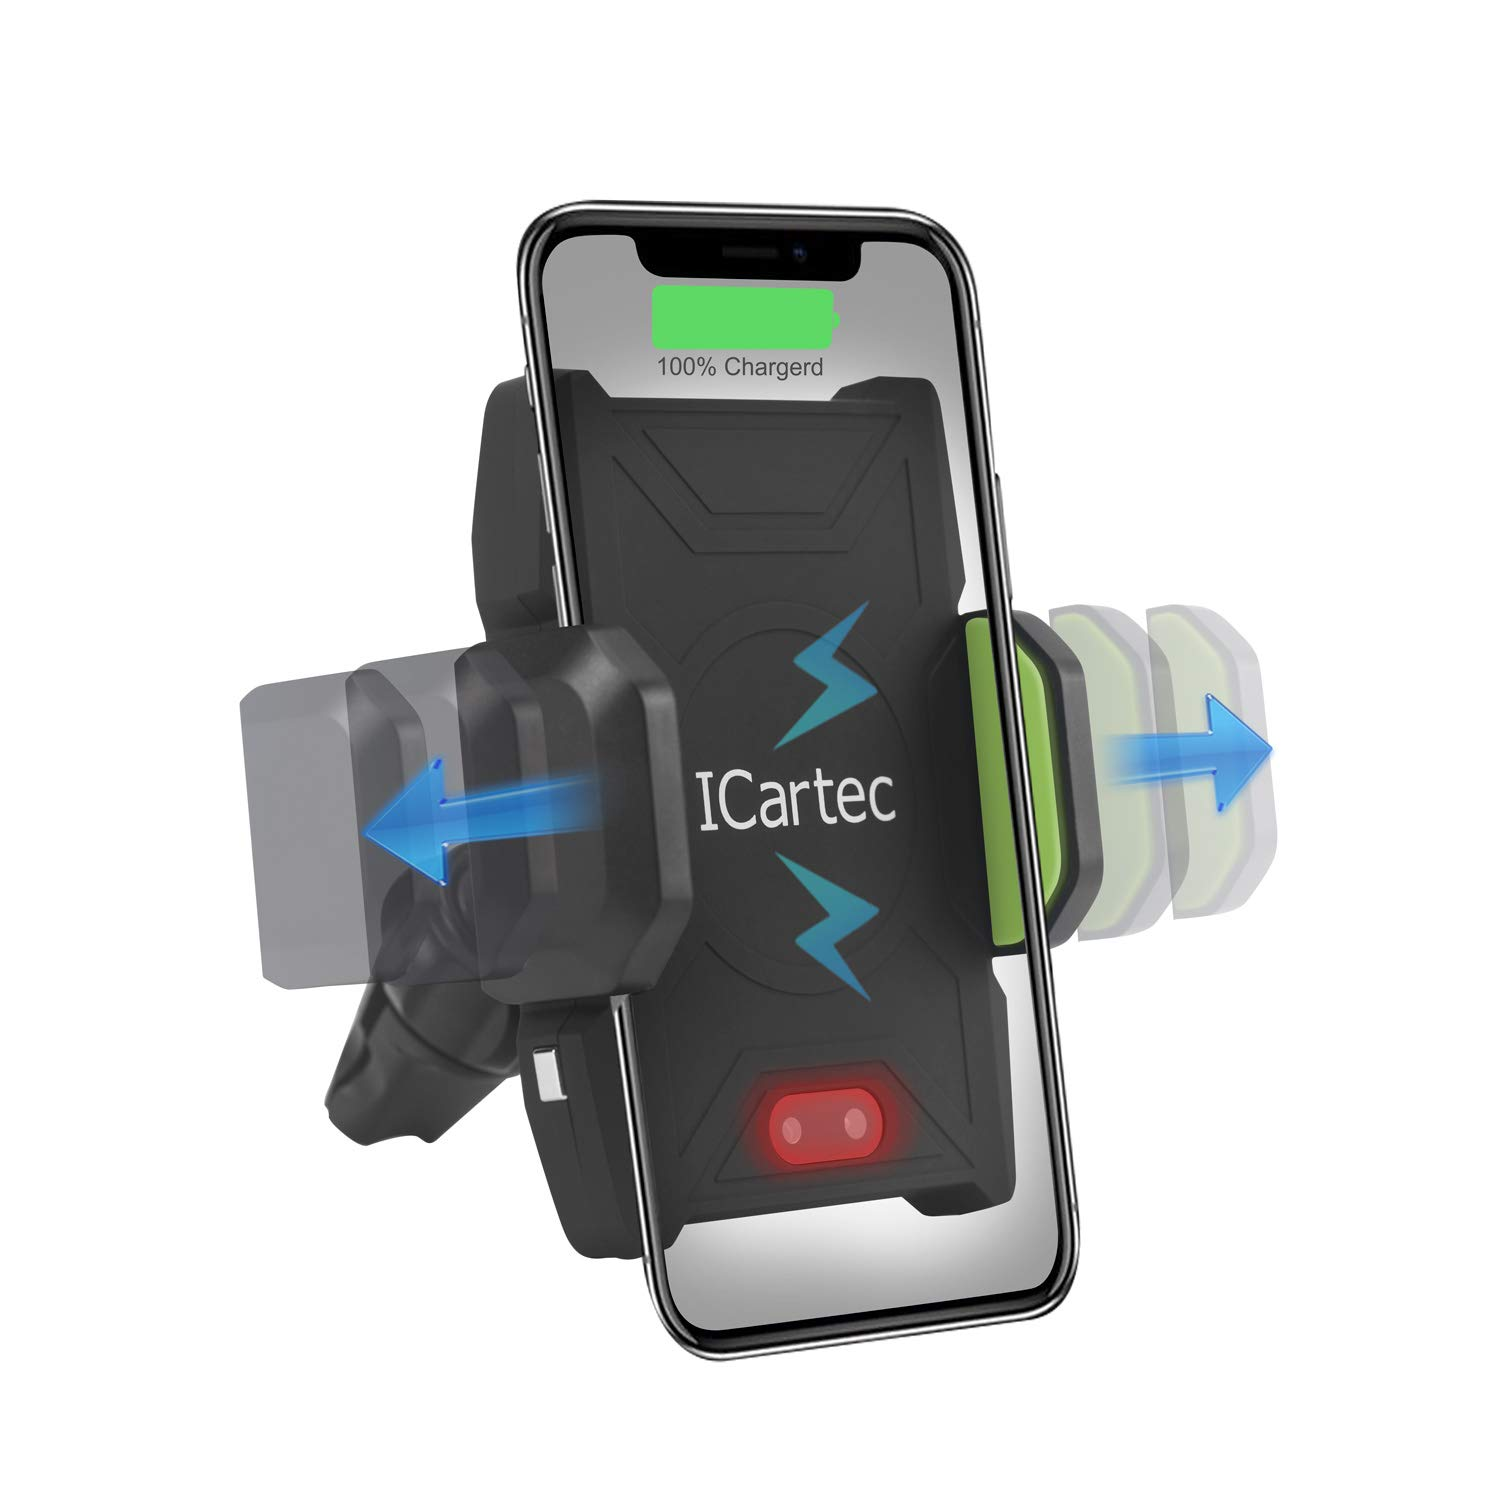 Qi Wireless Car Charger, Wireless Fast Car Mount Air Vent, Phone Holder Fast Charge 10W for Samsung Galaxy S8/S9/Note 8, iPhone X/8/8 Plus and All QI-Enabled Devices, Infrared Motion Sensor Automatic by ICartec